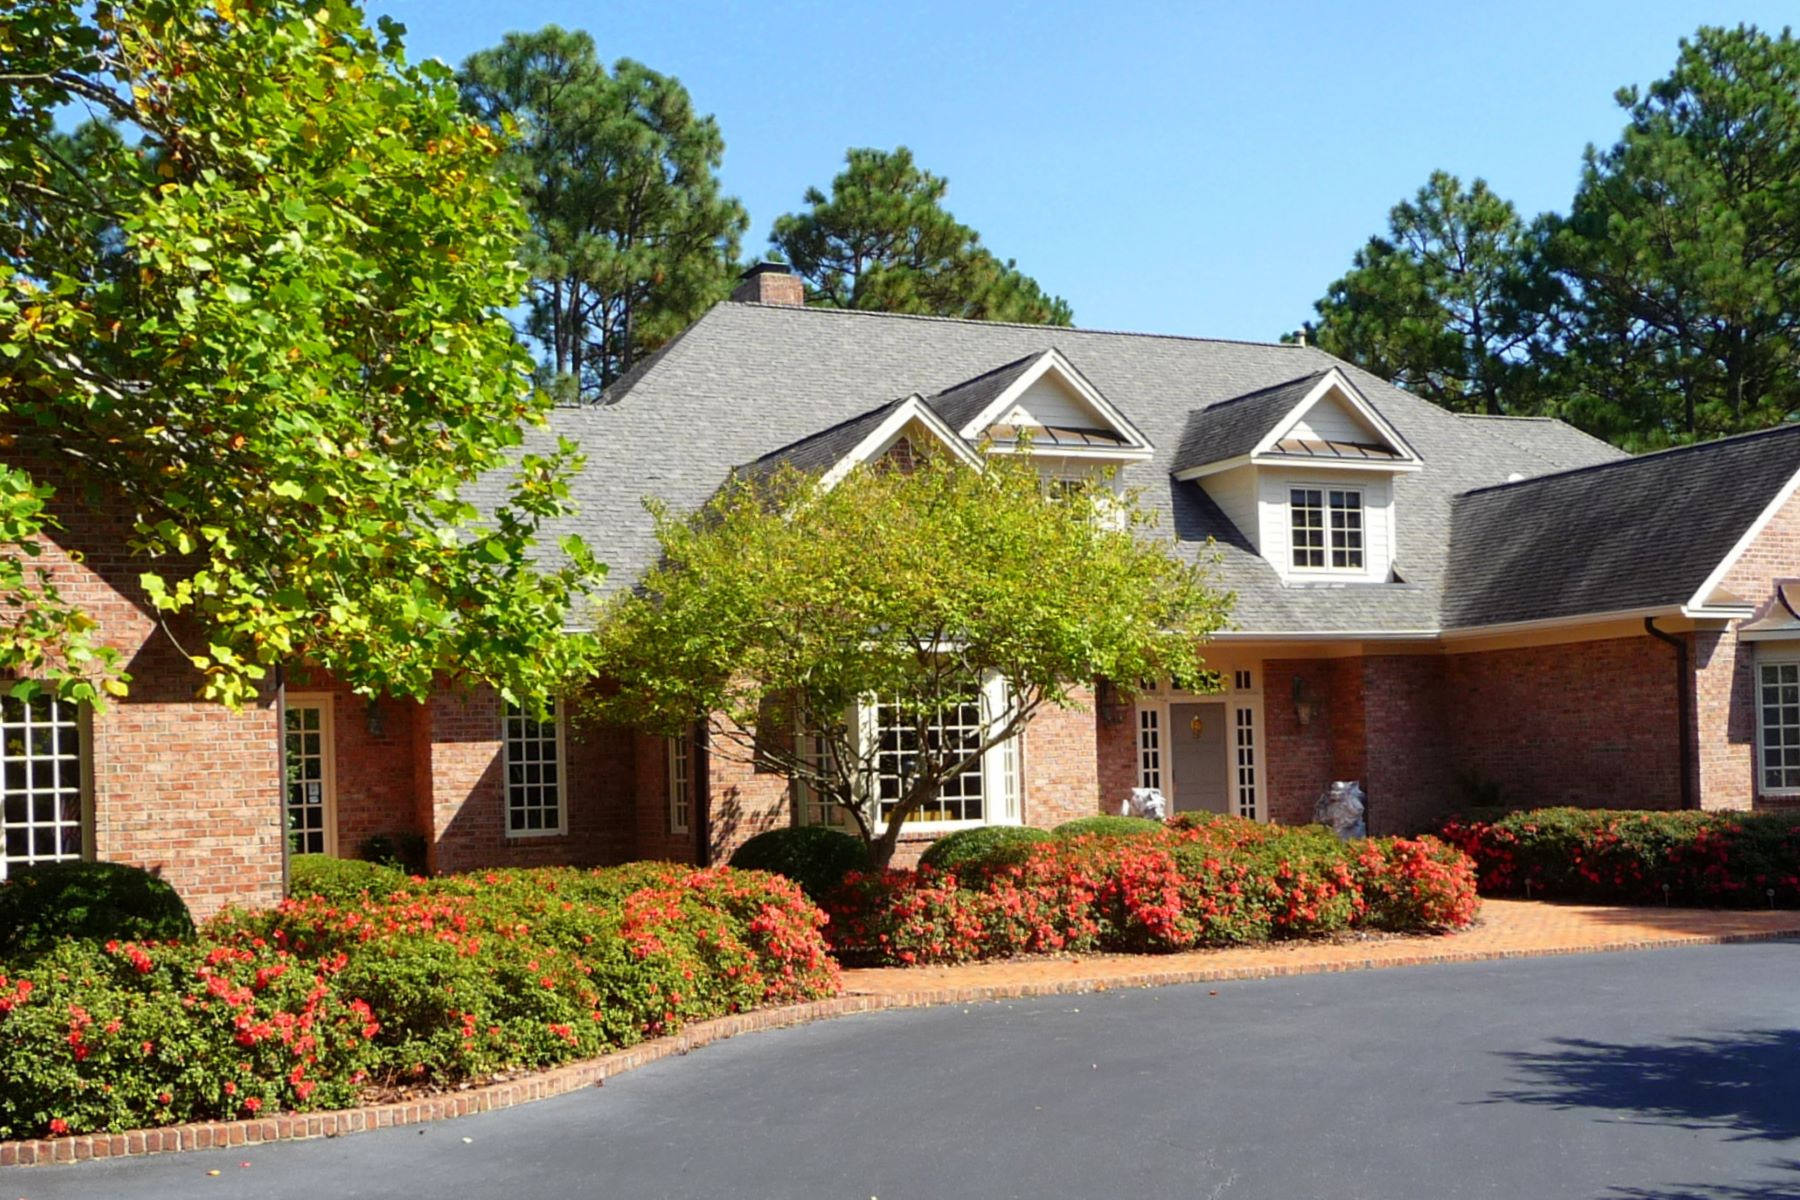 Single Family Homes for Active at 5 Acre Golf Front Estate in The Country Club of NC 800 Lake Dornoch Drive Pinehurst, North Carolina 28374 United States